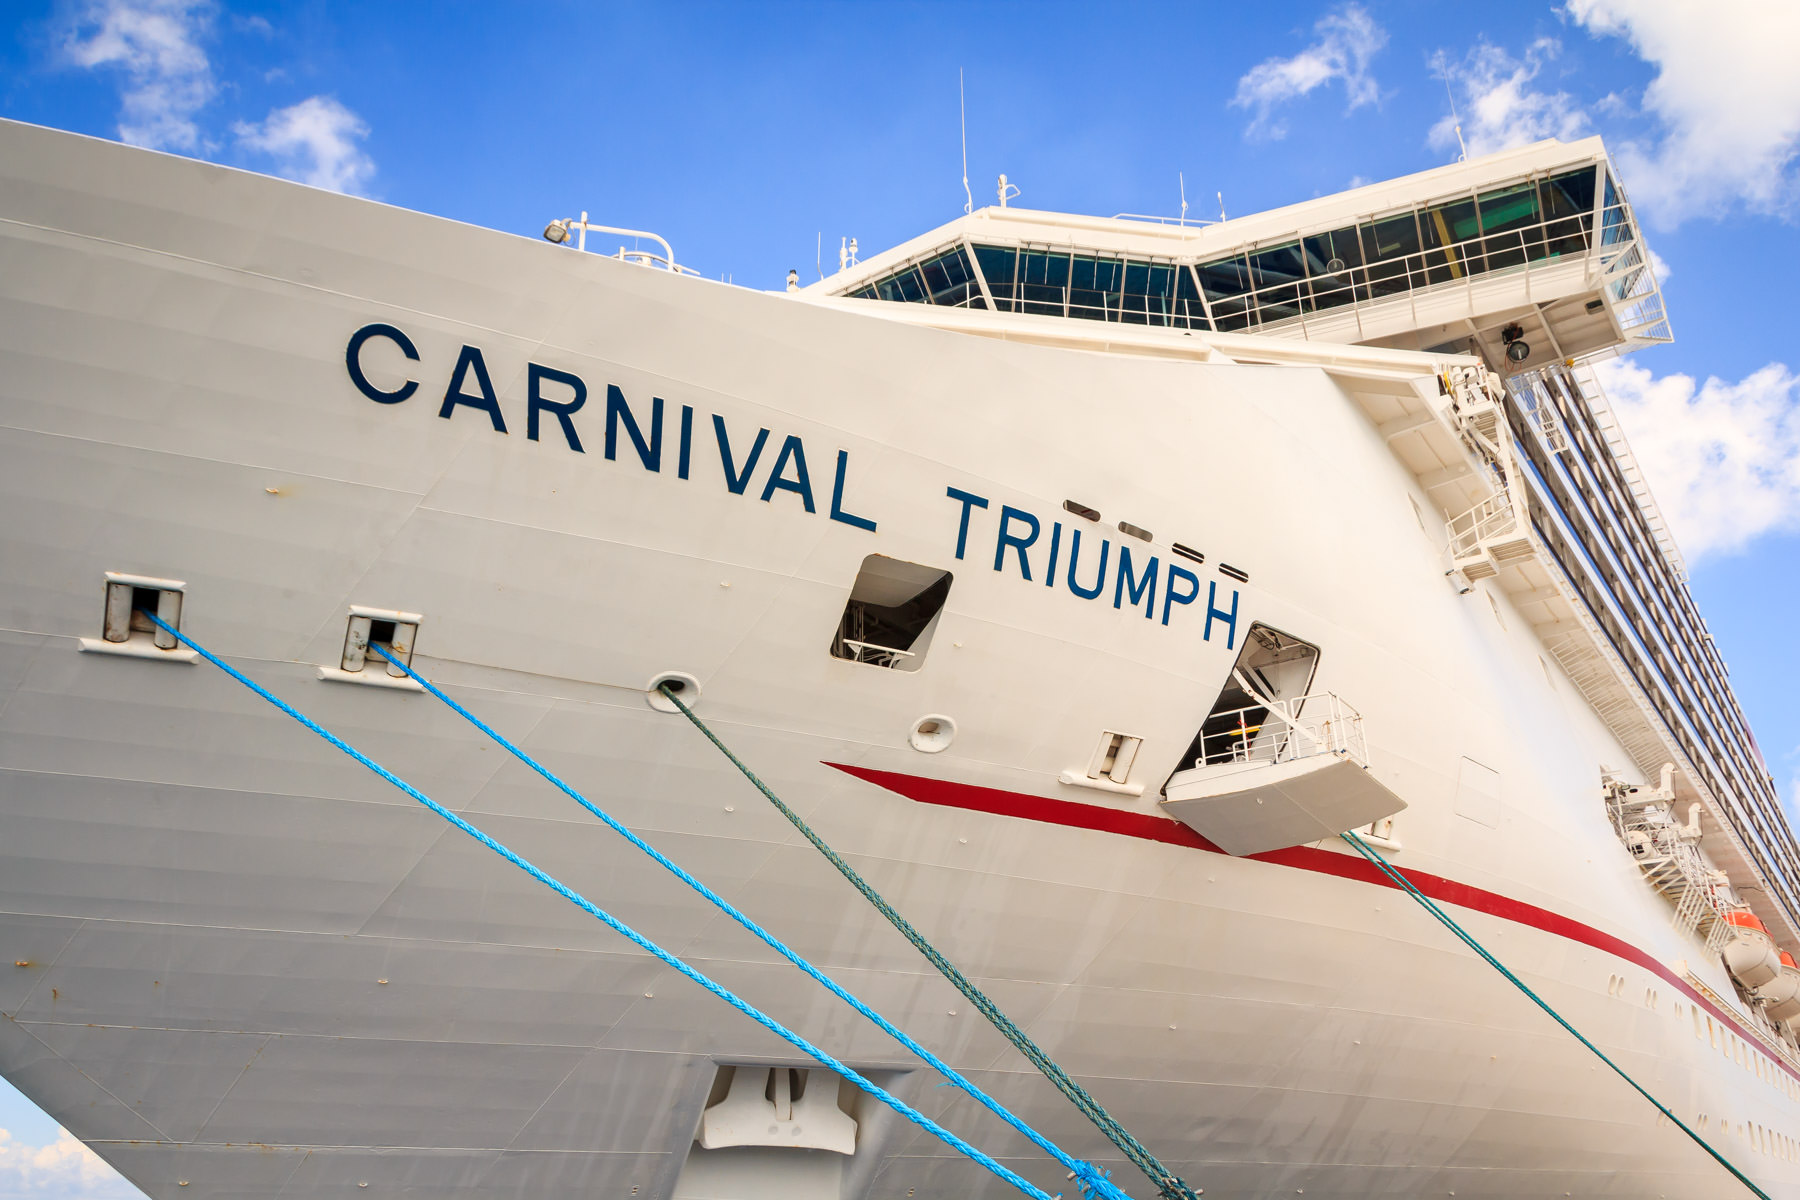 The cruise ship Carnival Triumph, docked in Cozumel, Mexico.